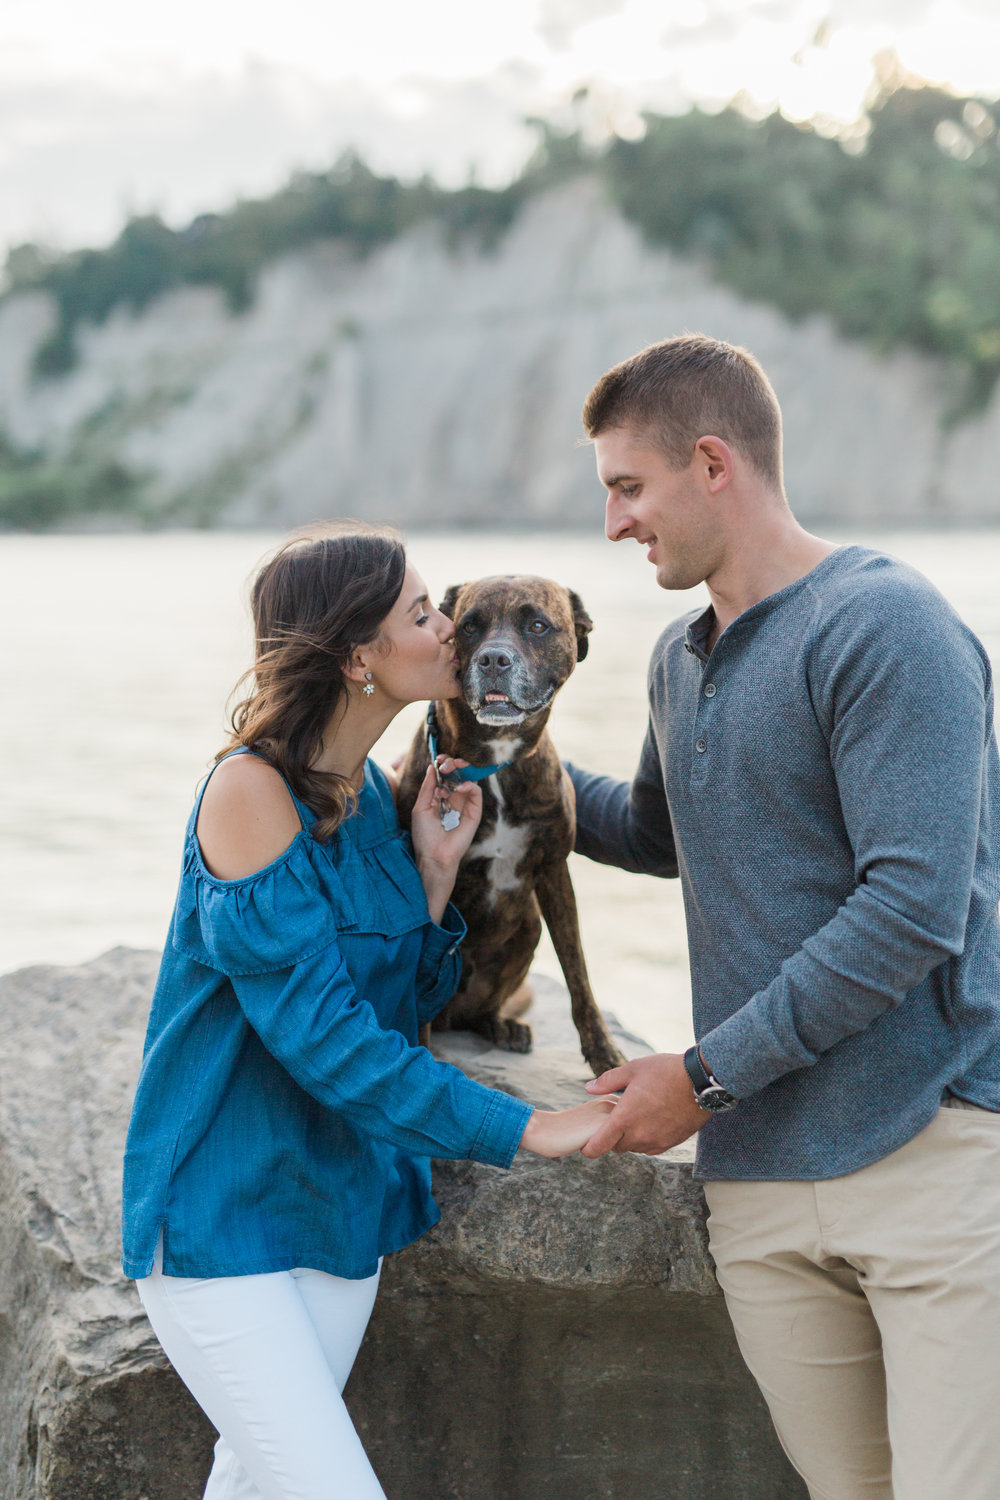 Danielle-Giroux-Amir-Golbazi-Genua-Family-Photography-Scarborough-Bluffs-9331.jpg